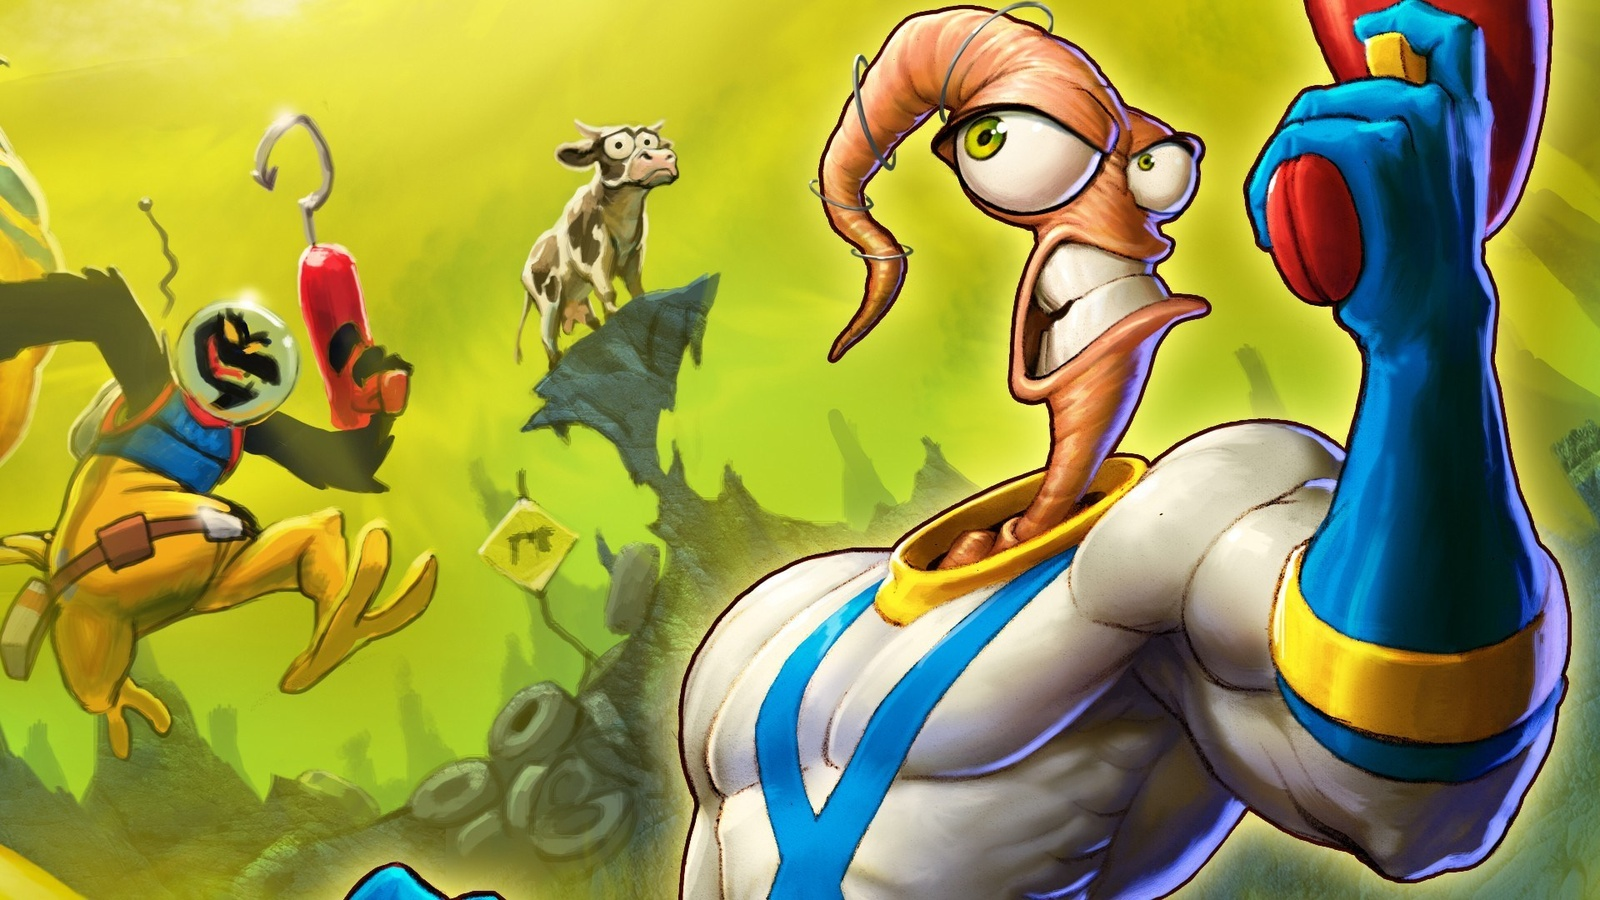 Червяк Джим/Earthworm Jim background